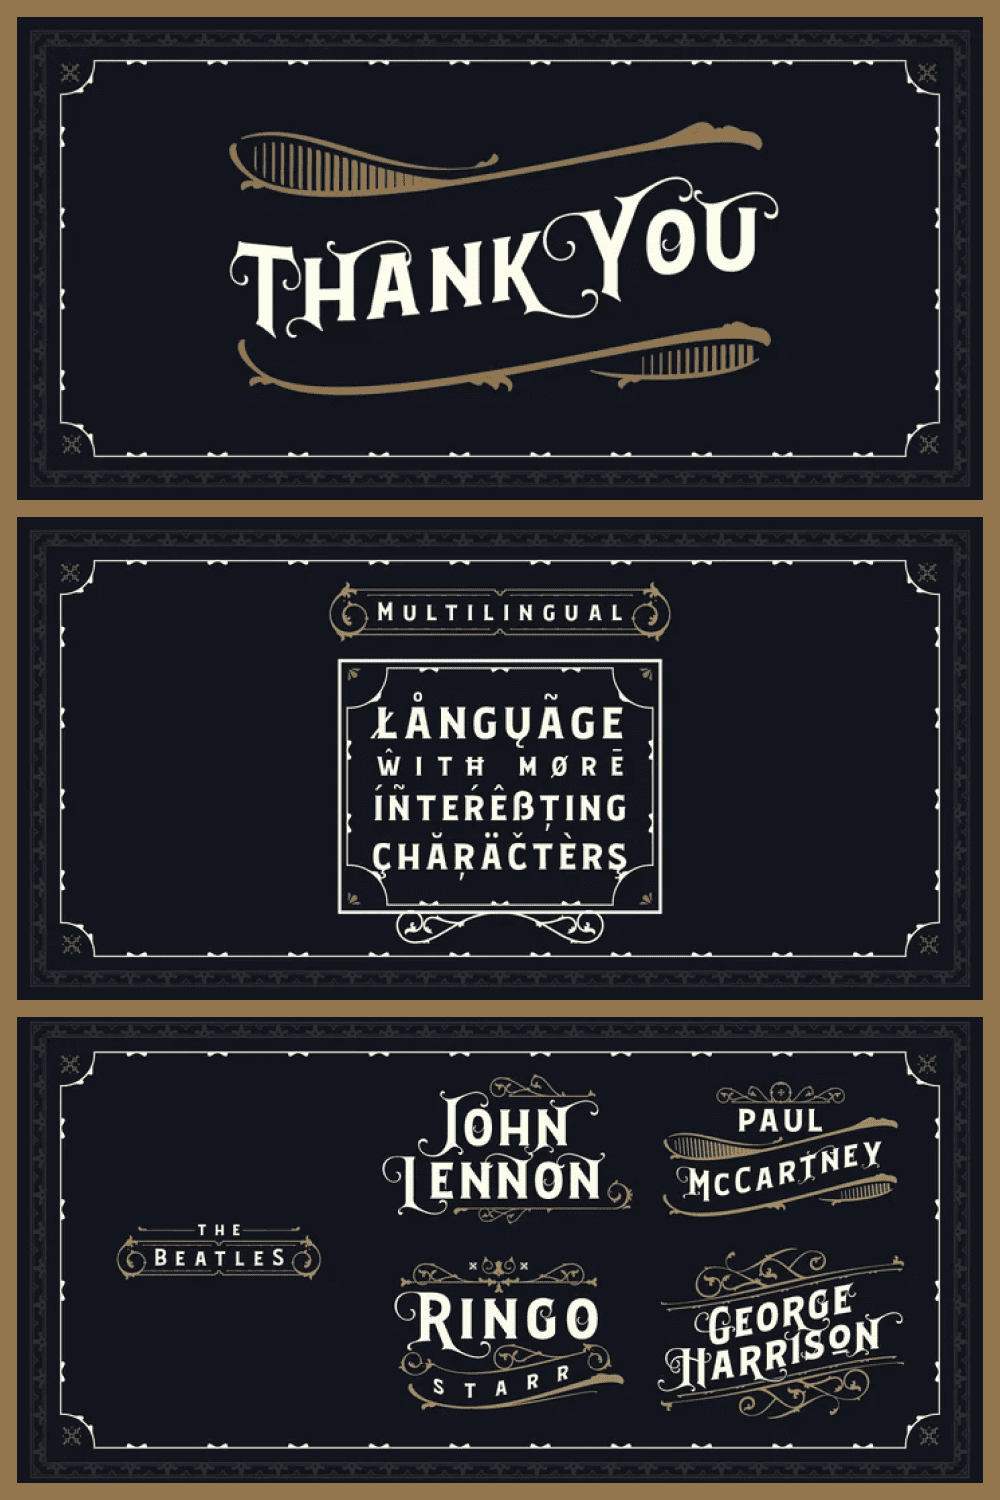 Craft font in retro style.